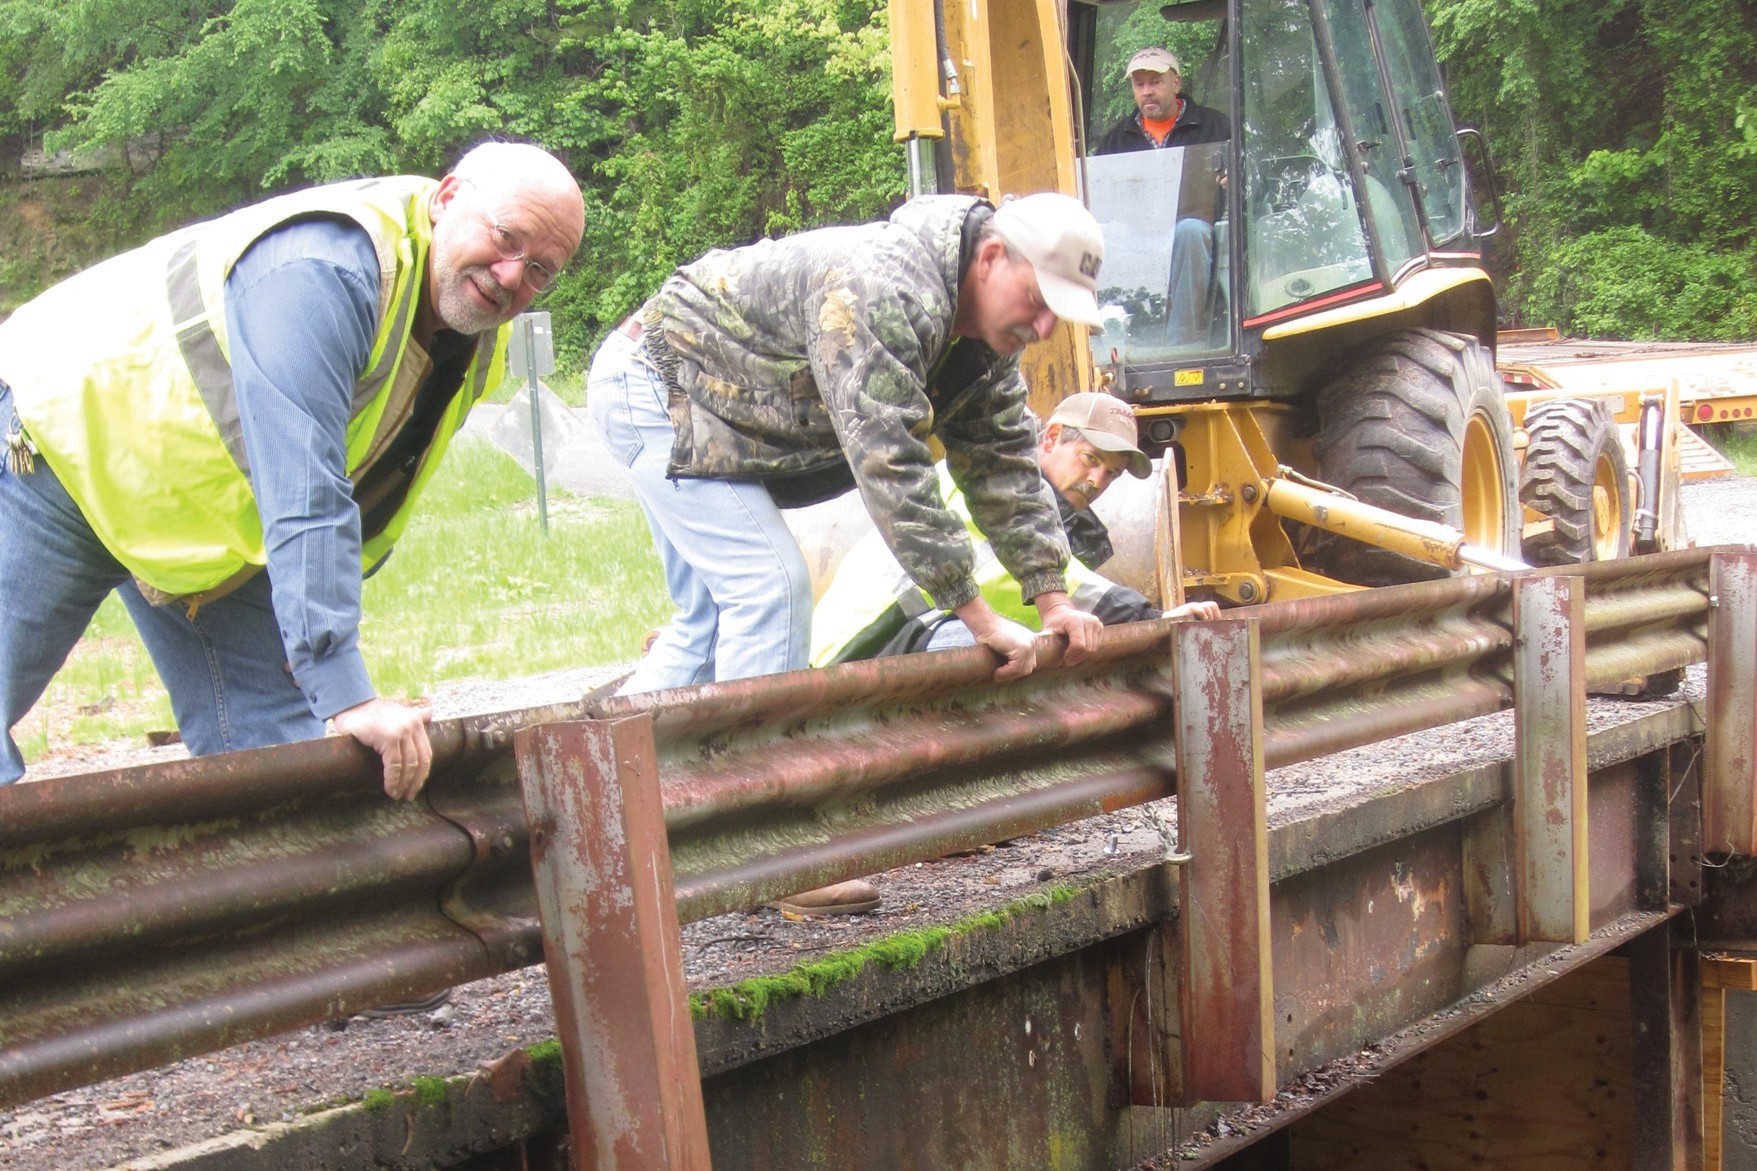 District 4 crew, from left, Commissioner Gary Stricklin, foreman Rob Branham, Rodney Burns, and David Gargus (in loader) work on bridge over Beech Branch on Horton Mill Road. They rebuilt abutments to the bridge, repaired the guardrail, and were reinstalling it the morning this photo was taken. The guardrail on the other side was missing and will be replaced, too.